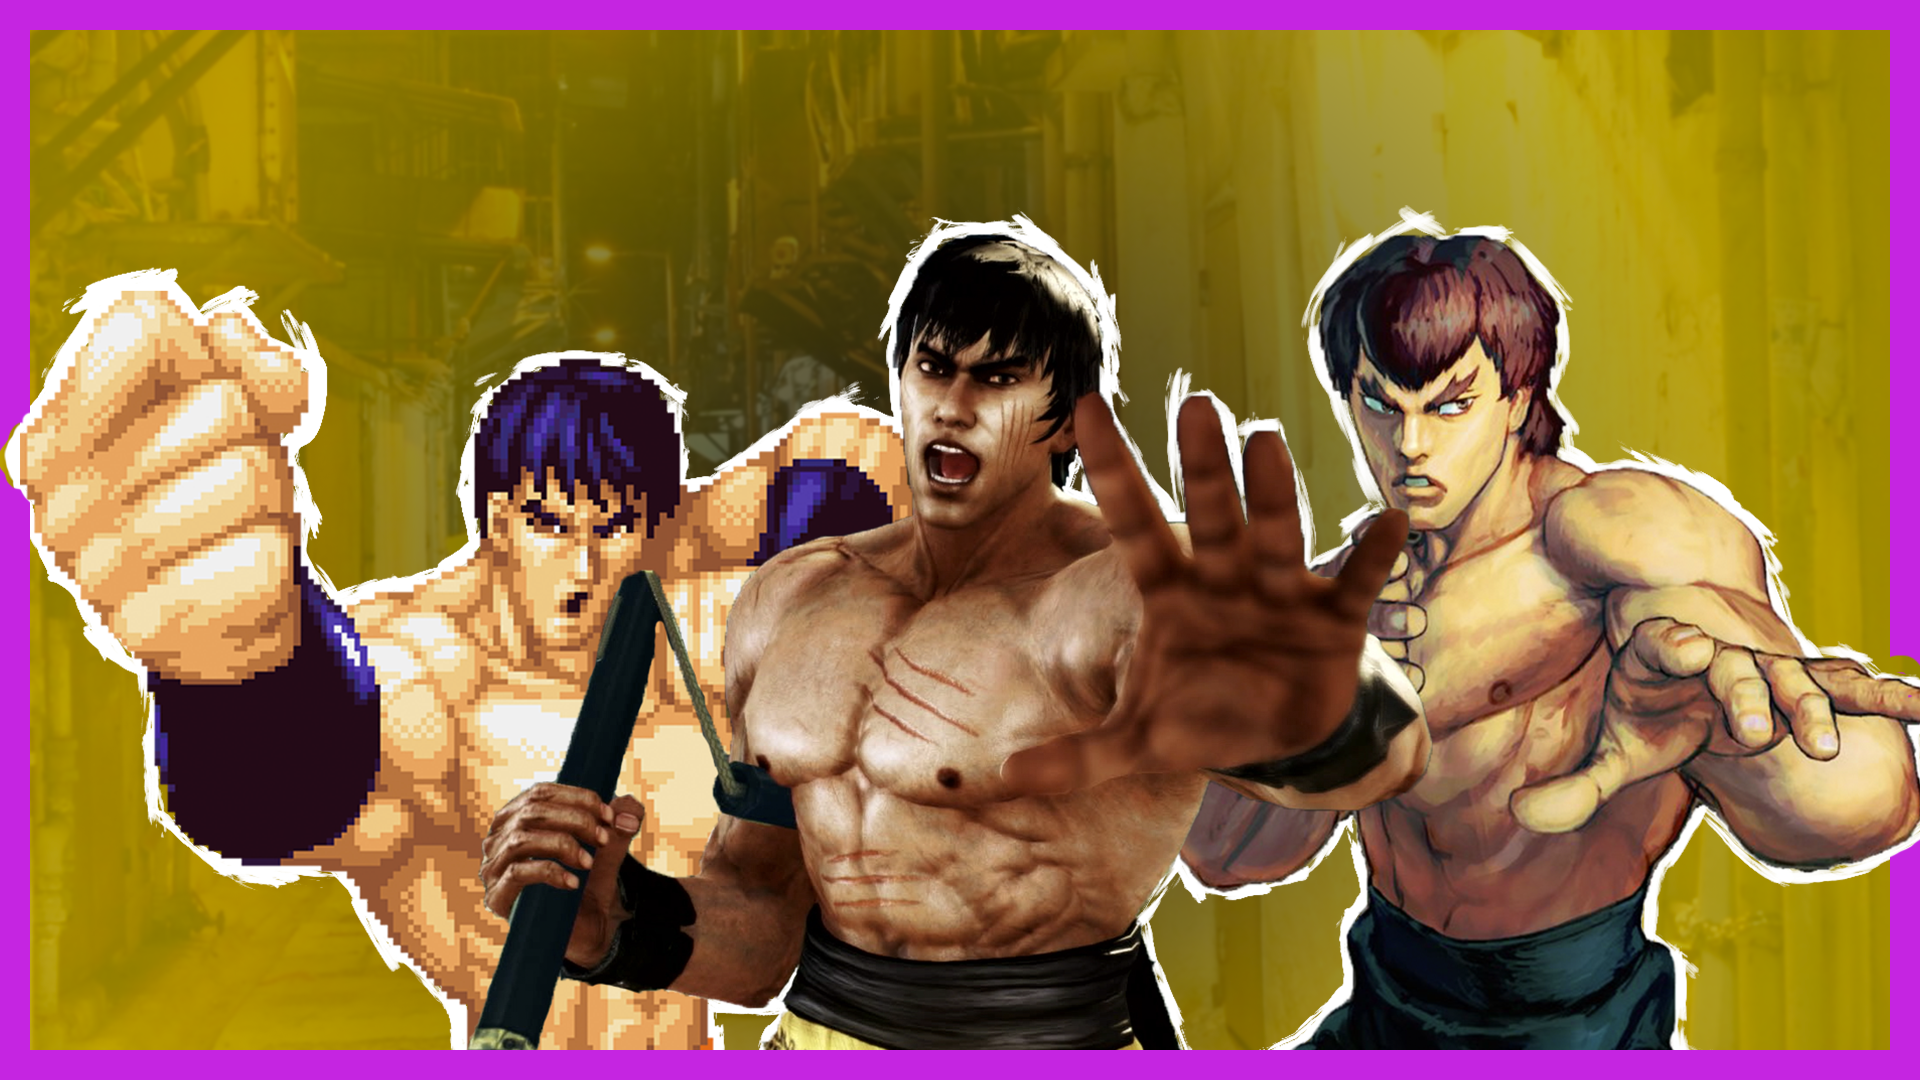 Several Bruce Lee look-alikes from video games pose dramatically